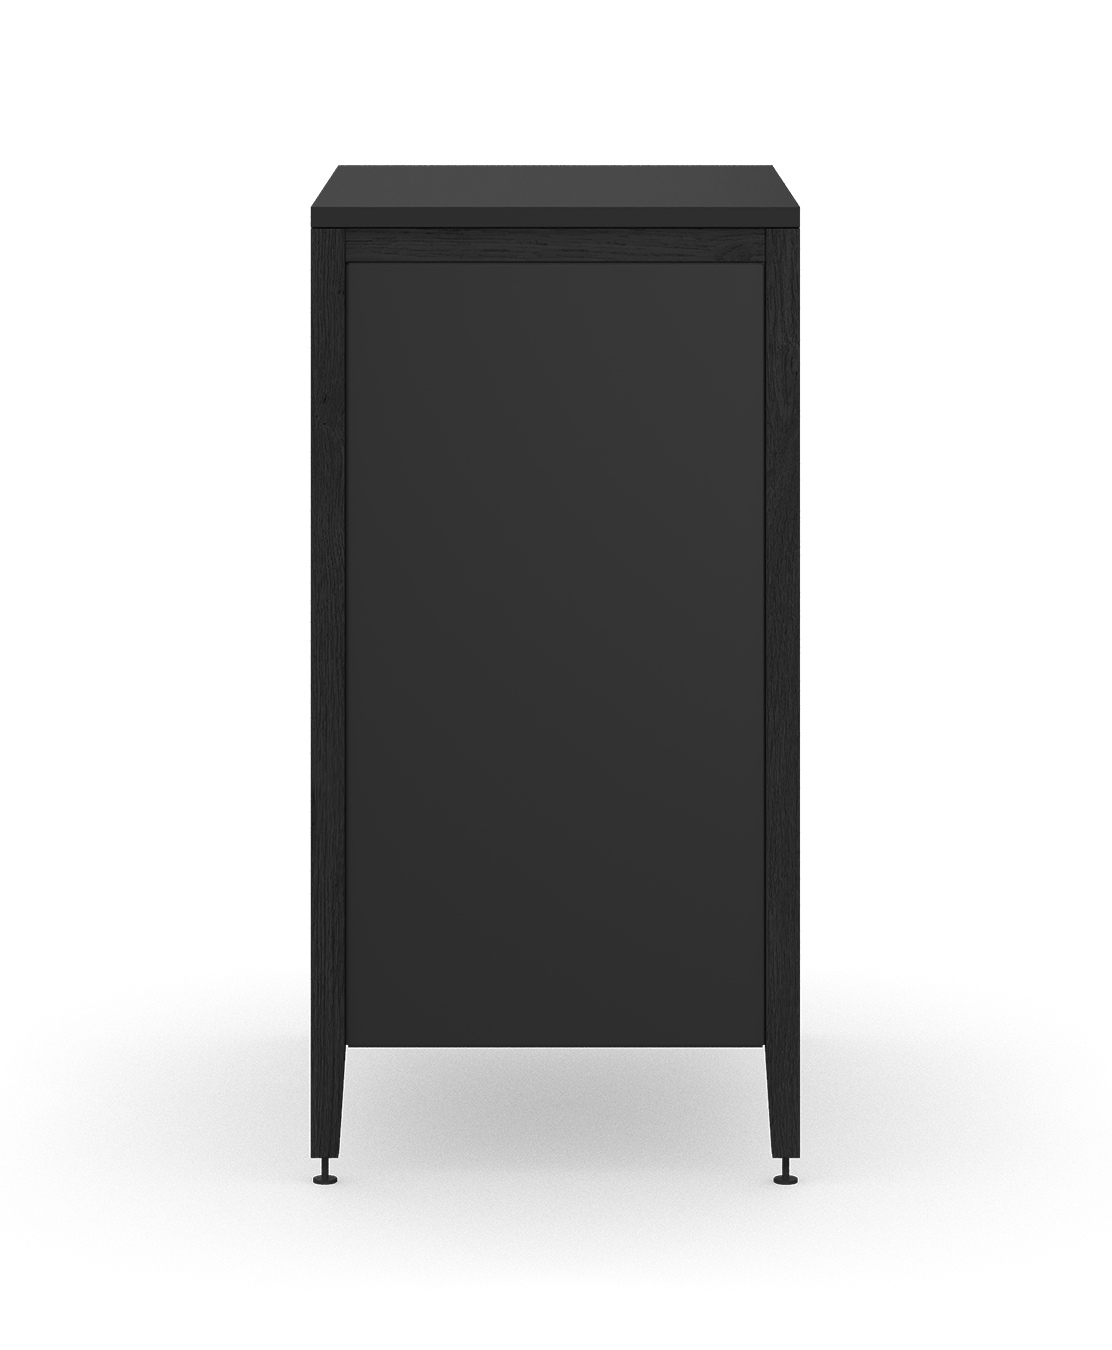 coquo radix midnight black stained oak solid wood modular 3 drawers base kitchen cabinet 18 inch C1-C-18TB-3002-BK